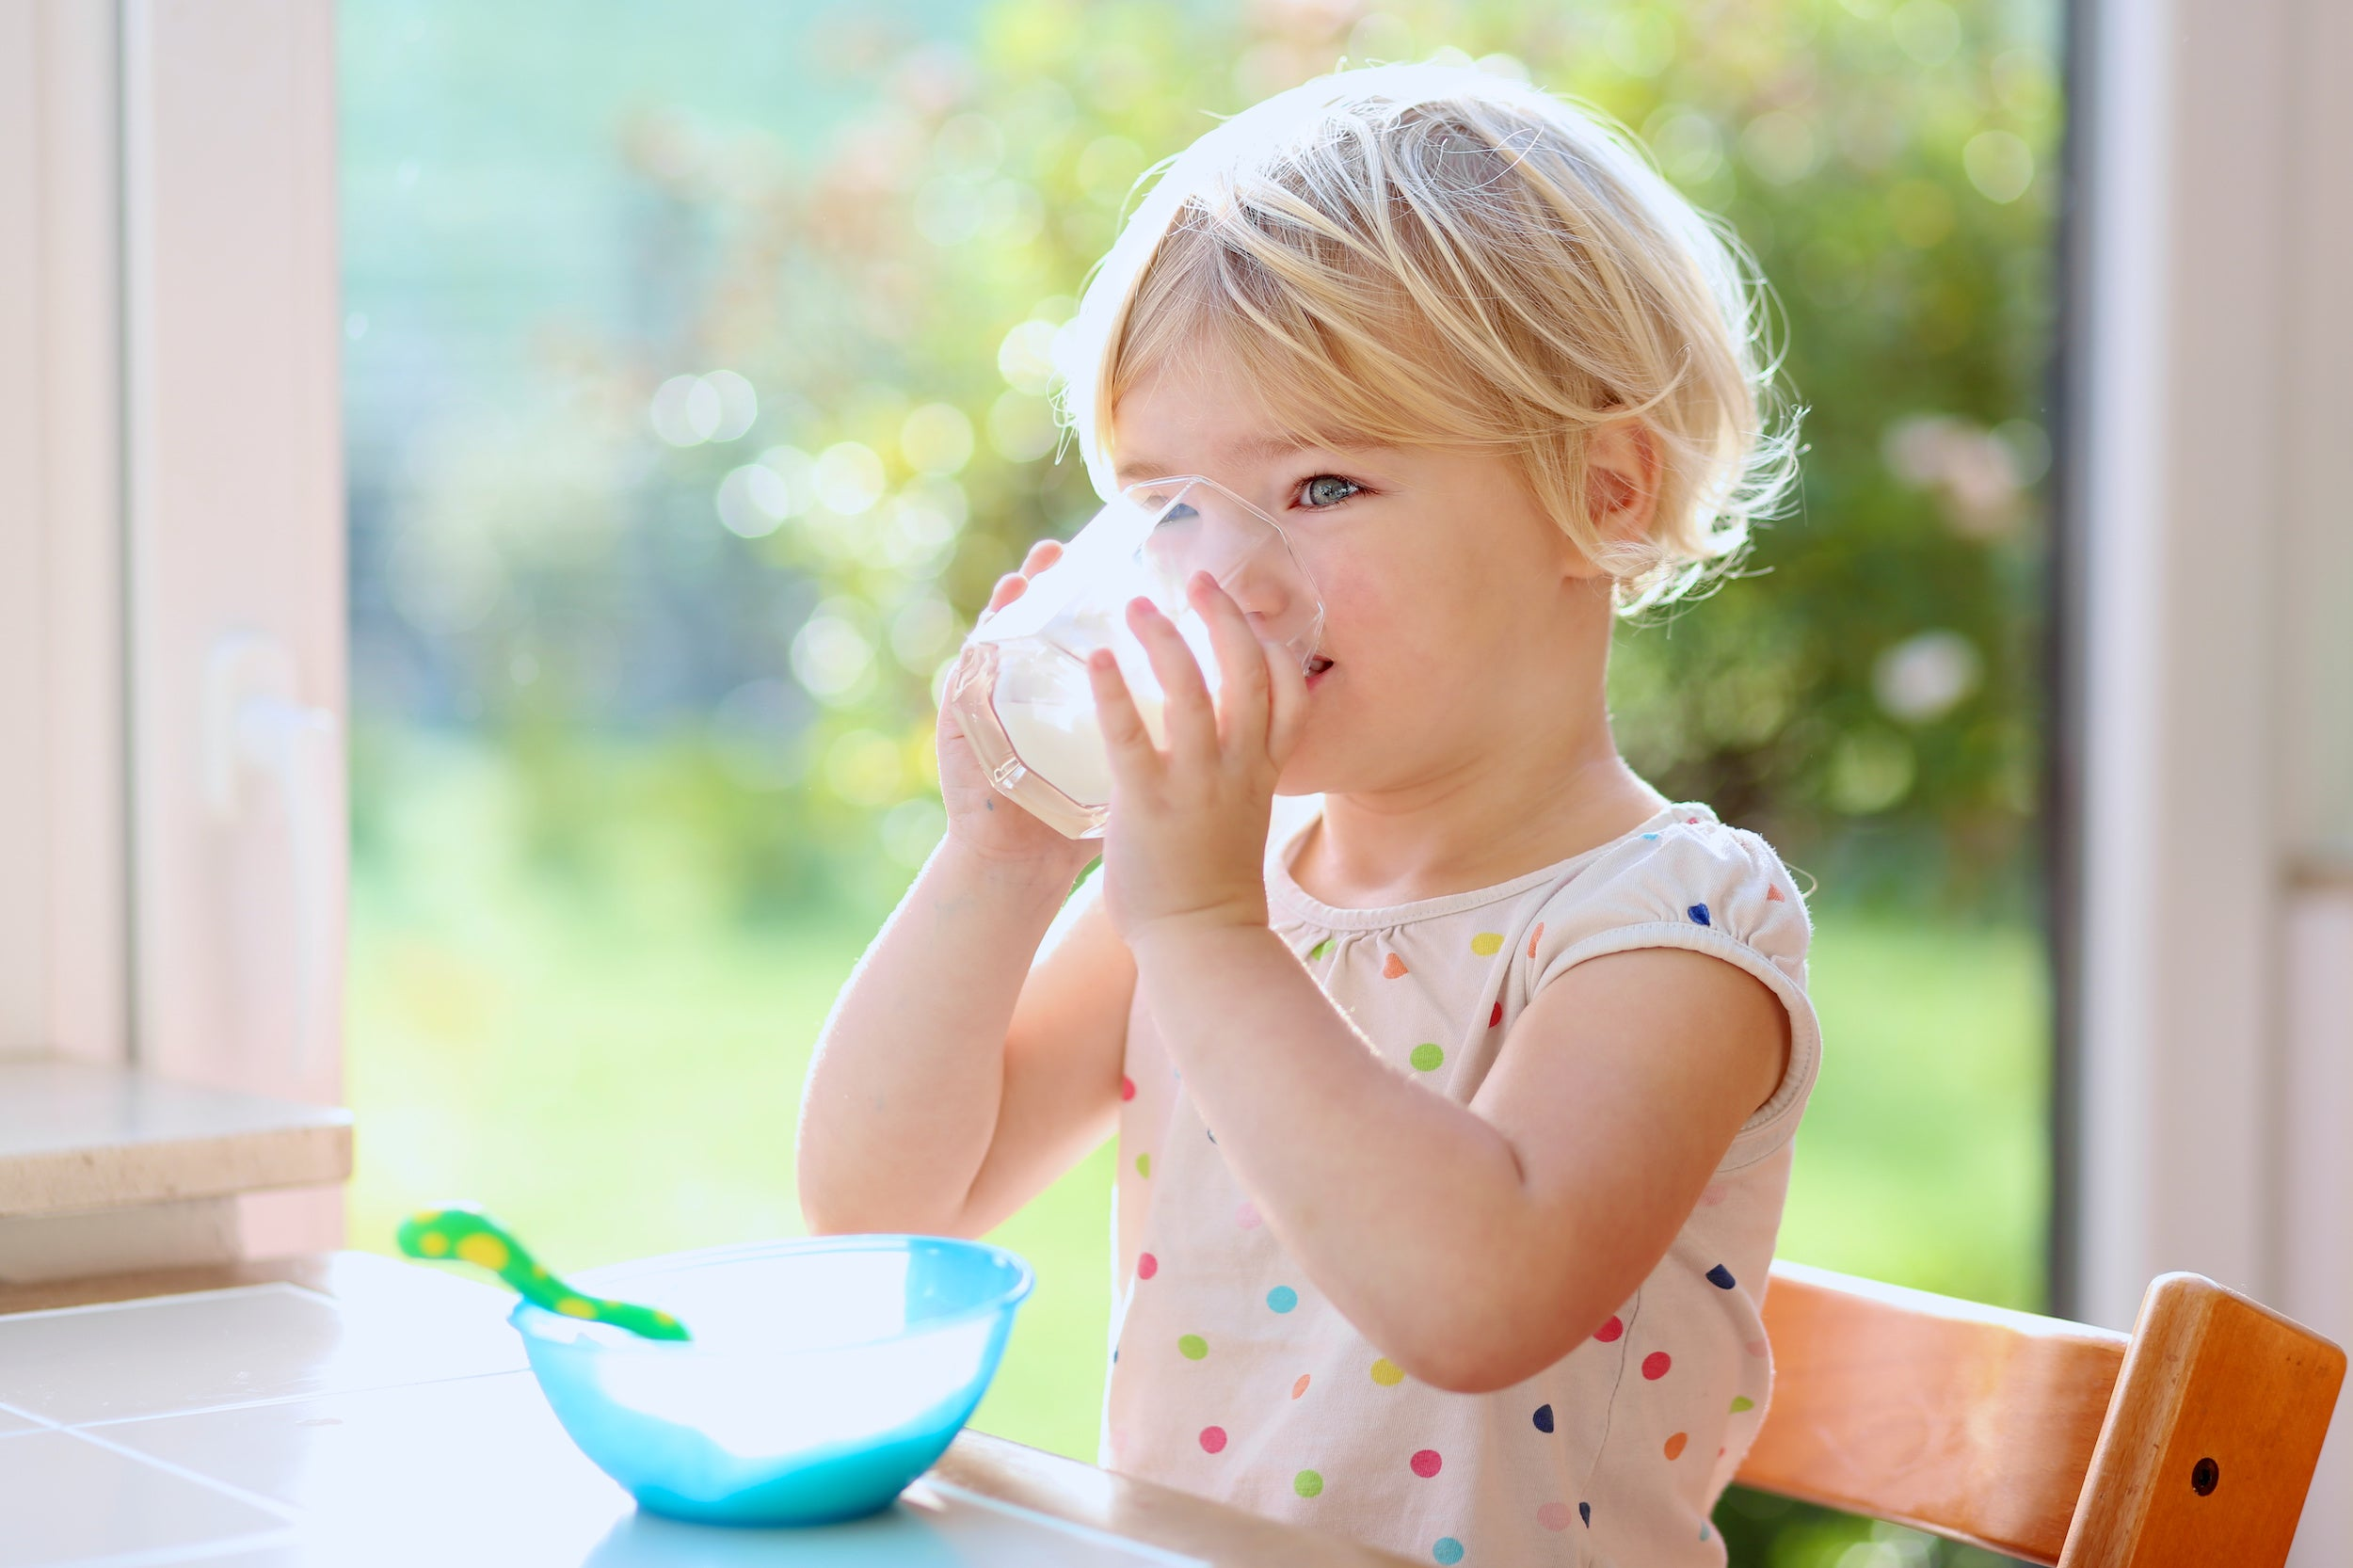 Blond curly-haired toddler drinking milk from a glass